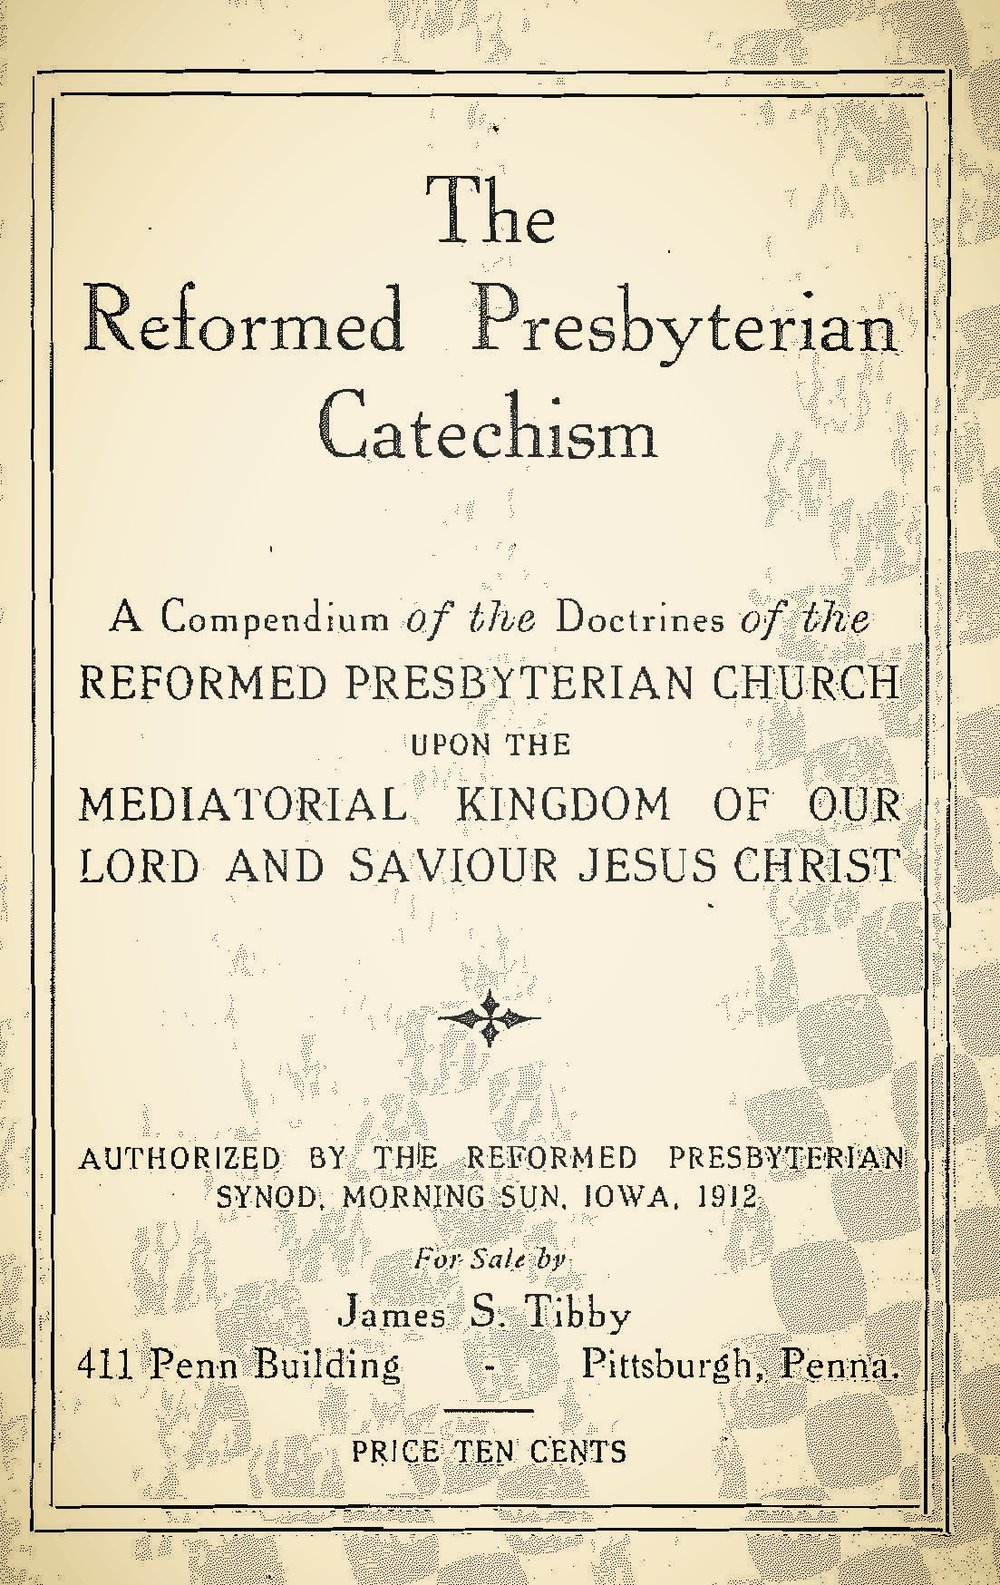 Edgar, George Alexander, The Reformed Presbyterian Catechism Title Page.jpg